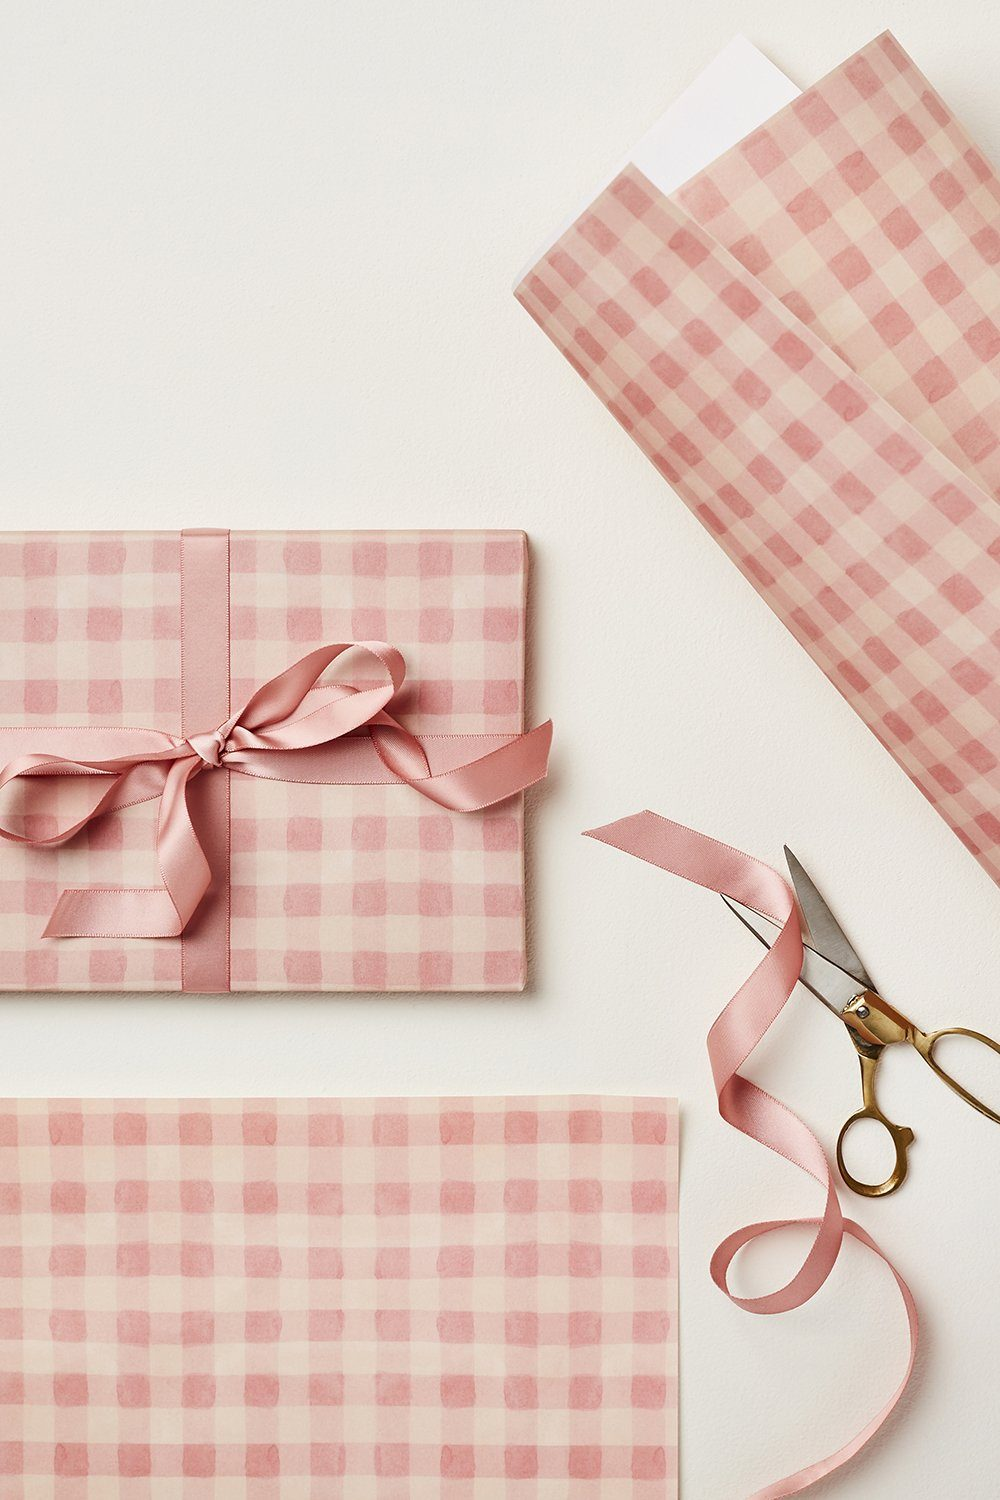 Wanderlust Paper - Gift Wrap Gifts & Stationery Wanderlust Paper Pink Gingham